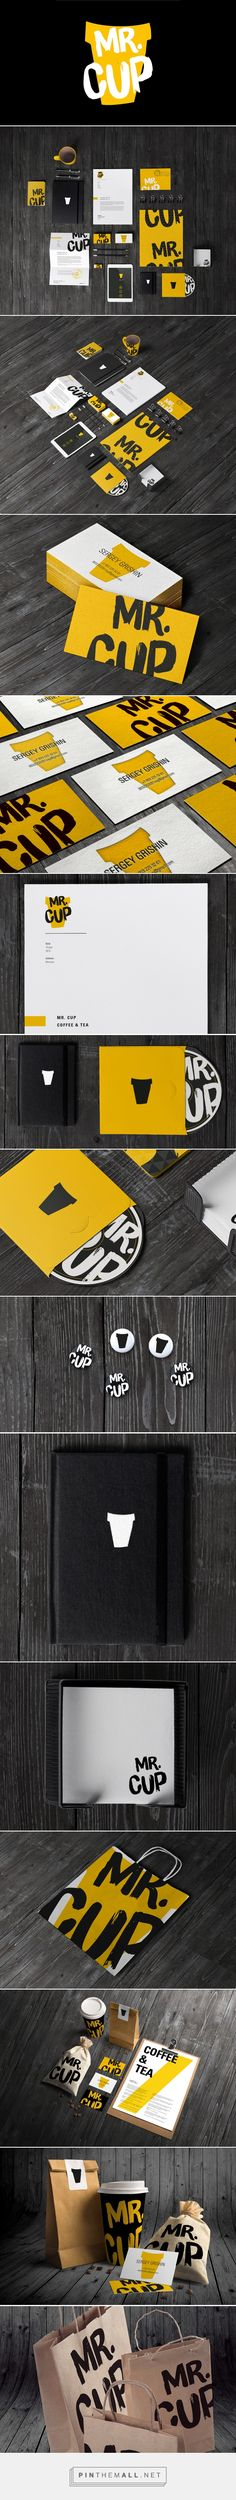 Fivestar Branding Agency – Business Branding and Web Design for Small Business Owners Design Visual, Graphisches Design, Logo Design, Design Poster, Brand Identity Design, Graphic Design Branding, Interior Design, Branding Agency, Business Branding